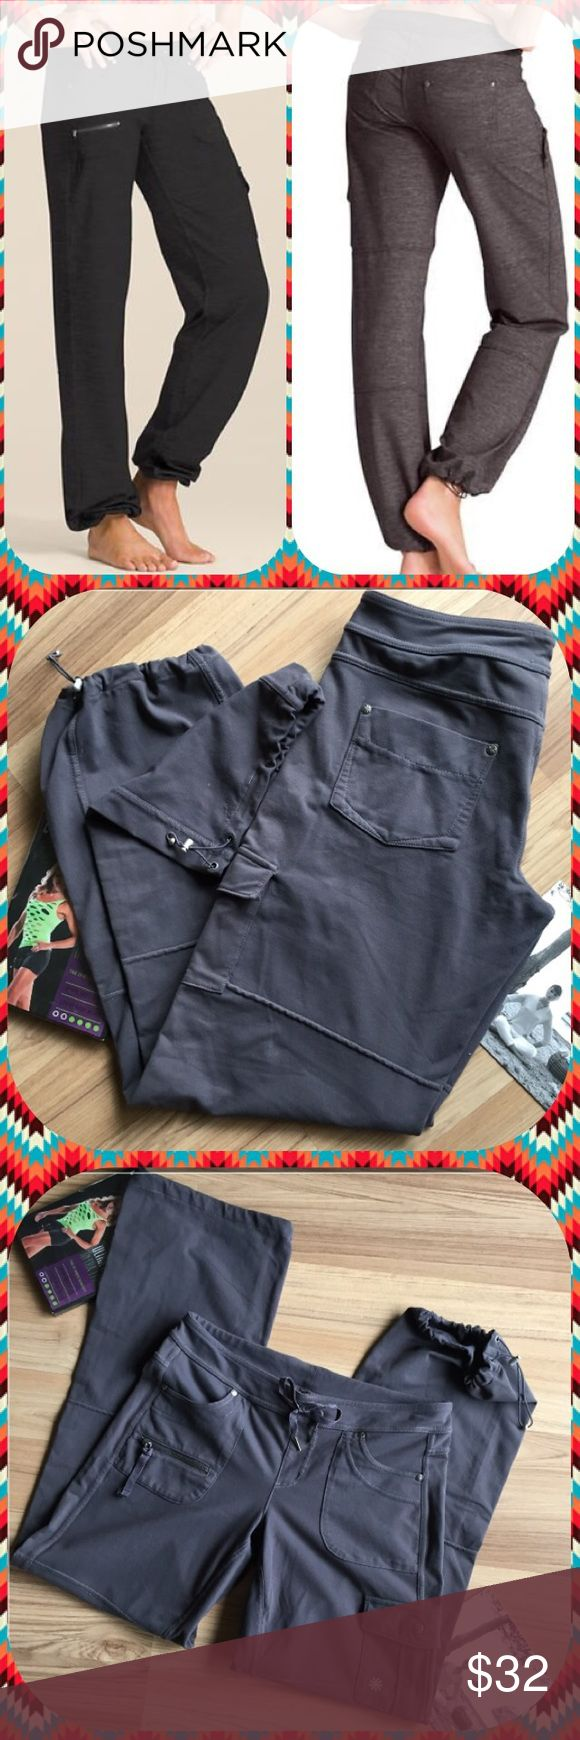 🐿 Athleta Bettona Pants🐿 Excellent Condition!!! 🍂🍁🐿 Heathered Bettona yoga multipurpose fitness pants cover all of your schedule's needs. Multiple pockets, cinches at the ankle, and fabulous fabric all make this a great choice for your active/Travel lifestyle. Size S = Lululemon 6.  Worn only a few times.(Black pants on left model only in frame #1) Athleta Jackets & Coats